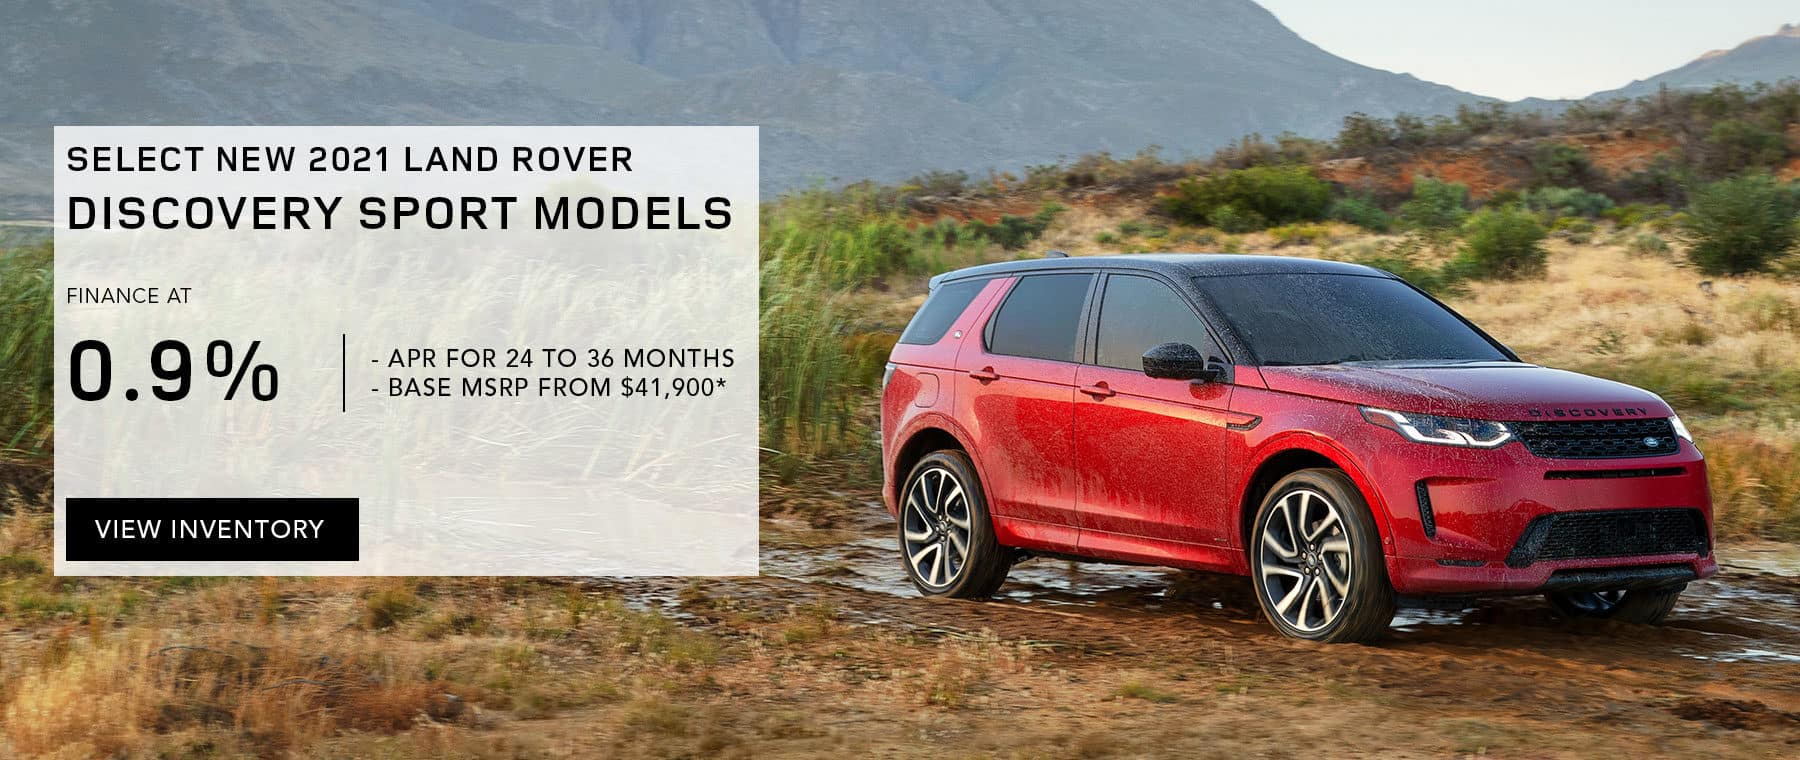 SELECT NEW 2021 LAND ROVER DISCOVERY SPORT MODELS. FINANCE AT 0.9% APR FOR 24 TO 36 MONTHS. EXCLUDES TAXES, TITLE, LICENSE AND FEES. OFFER ENDS 11/1/2021. Discovery Sport parked on a dirt road.